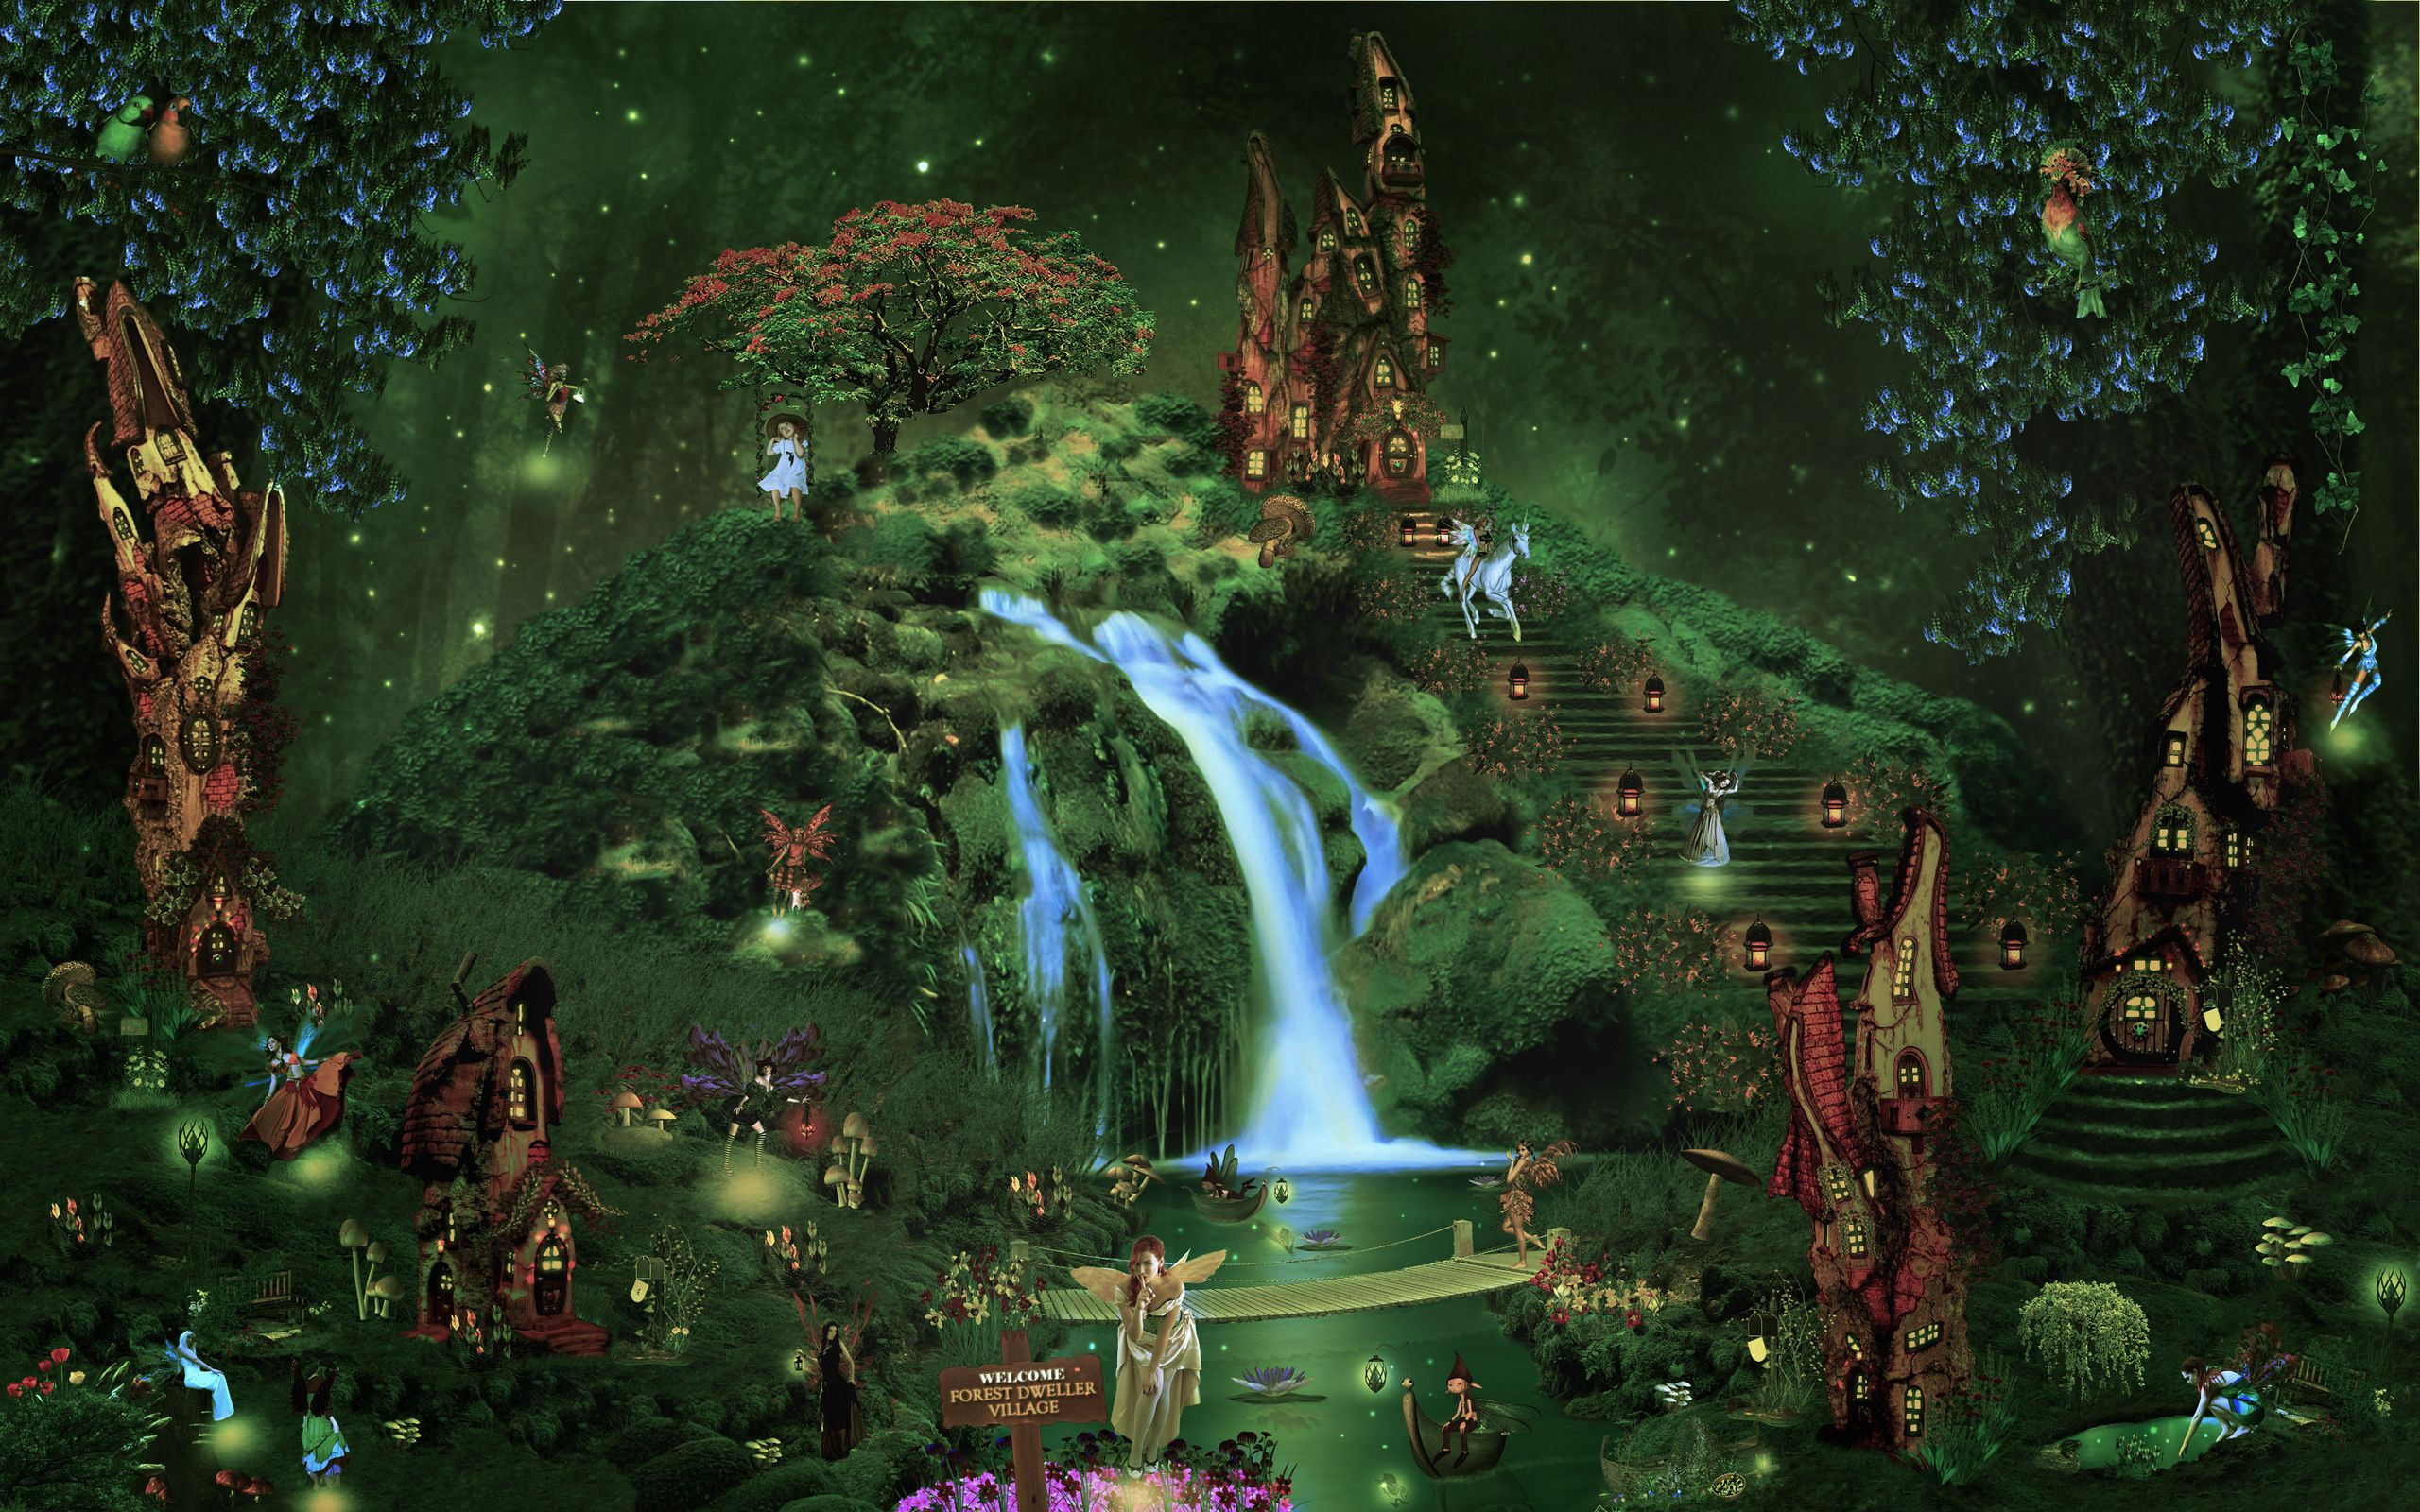 Castle City Forest Waterfall Fairy Elf Magical Wallpaper Background Fairy Wallpaper Forest Fairy Forest Waterfall